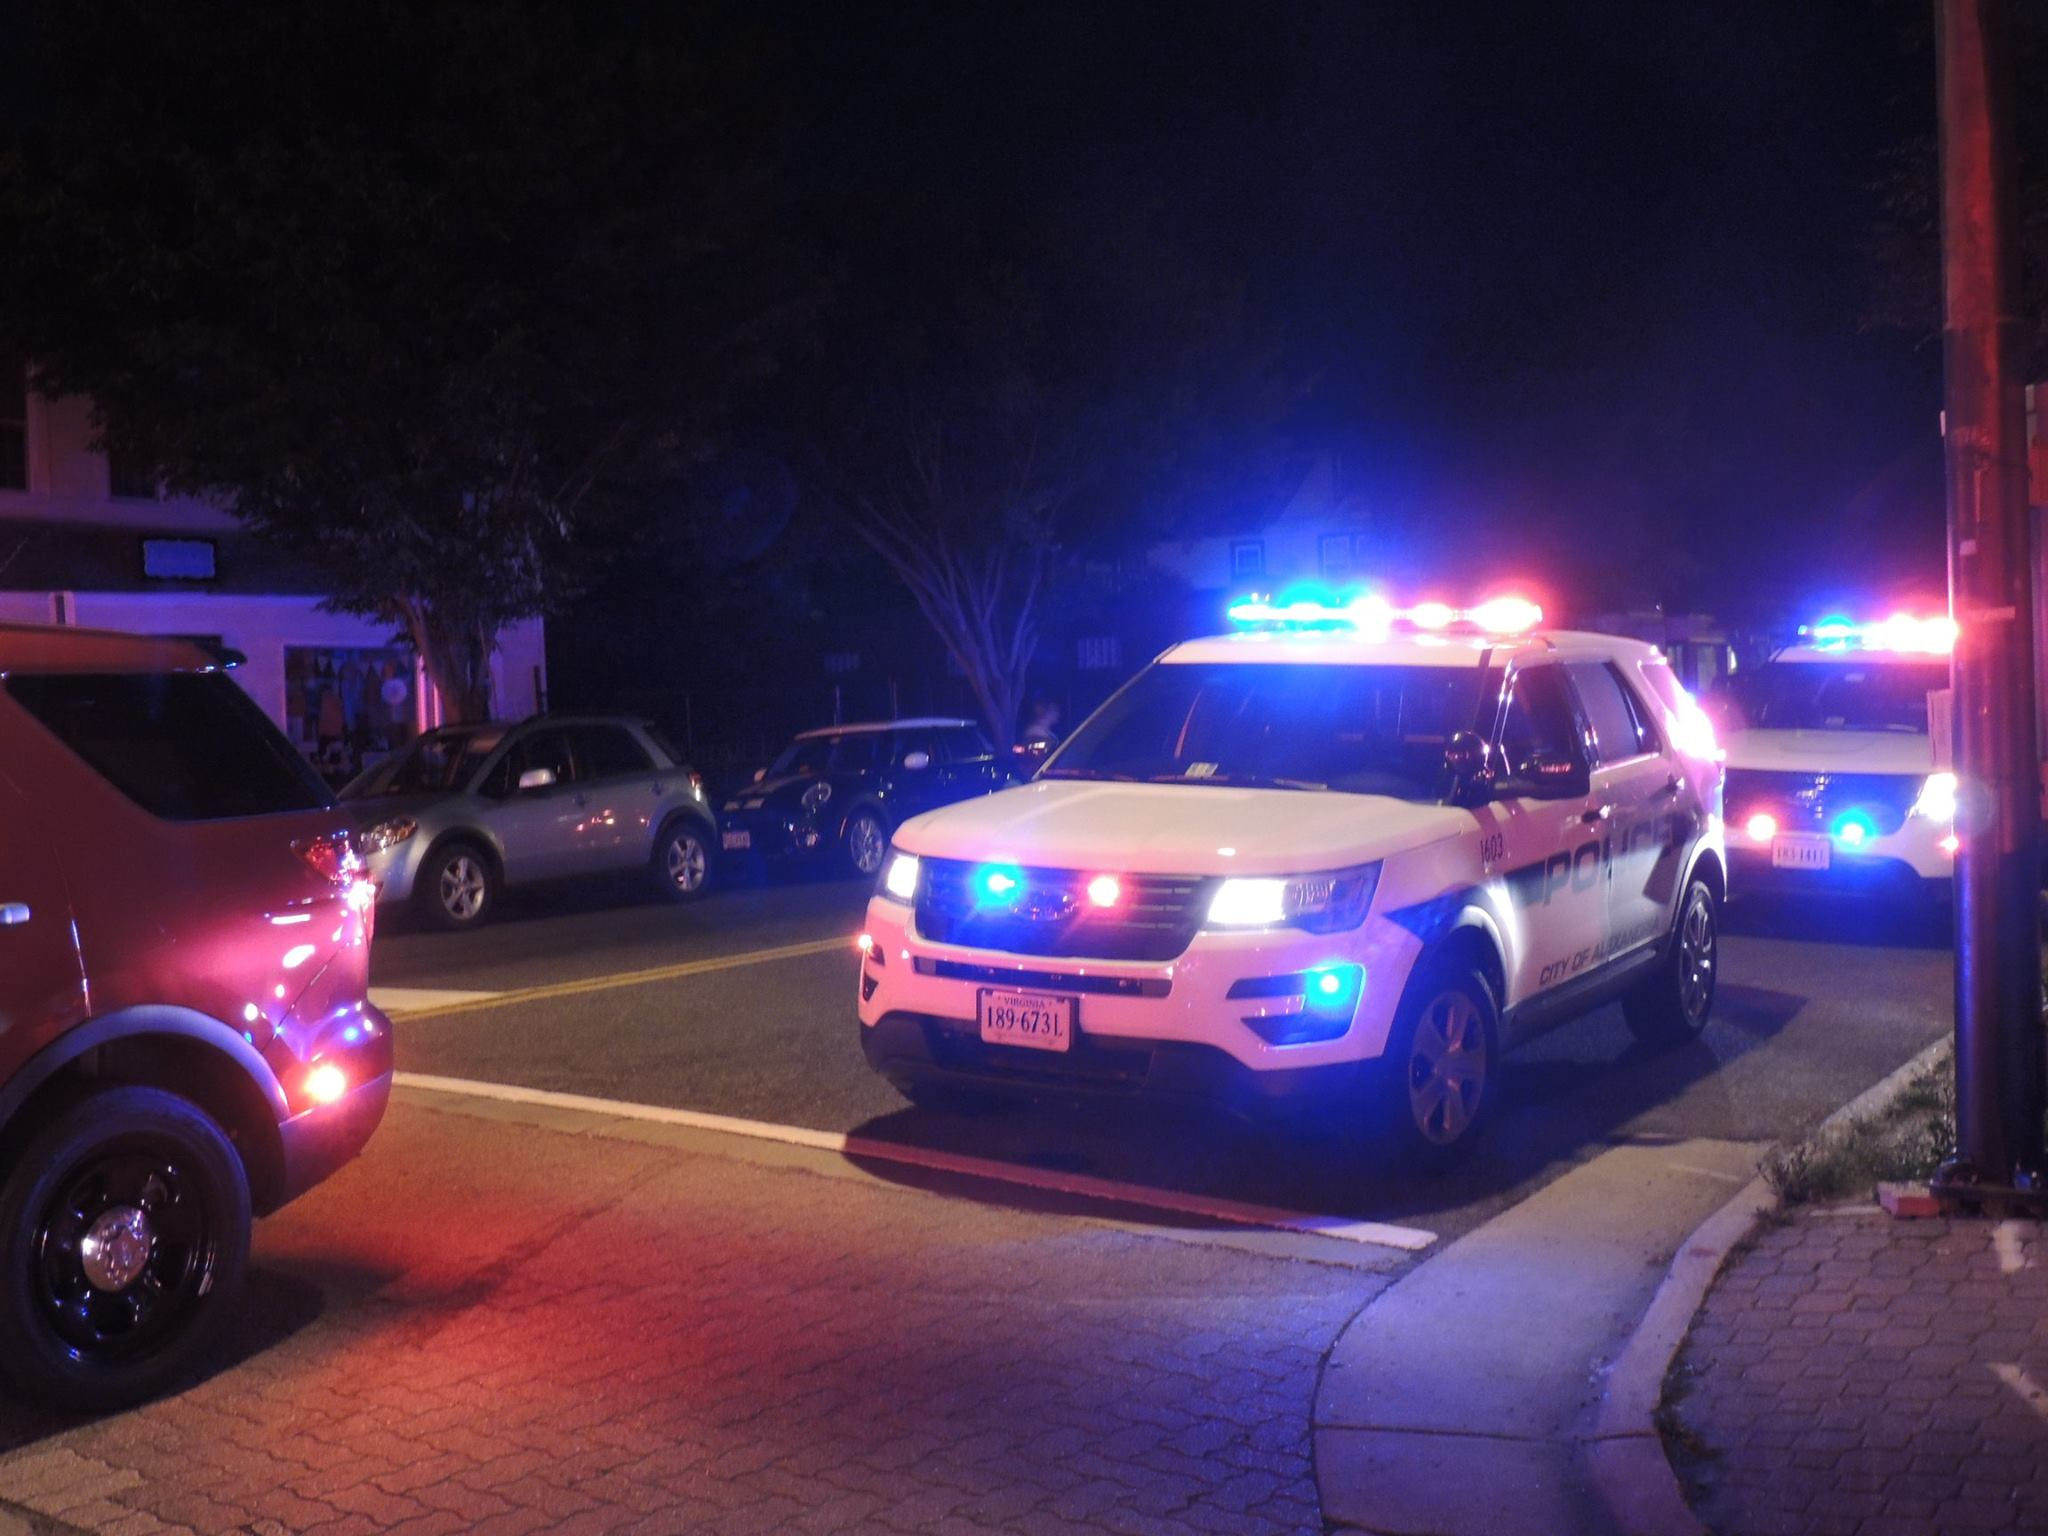 Here's the latest Alexandria Virginia crime report. These are incidents reported by the Alexandria Police Department that occurred in the last week (December 25, 2019 – January 1, 2020)